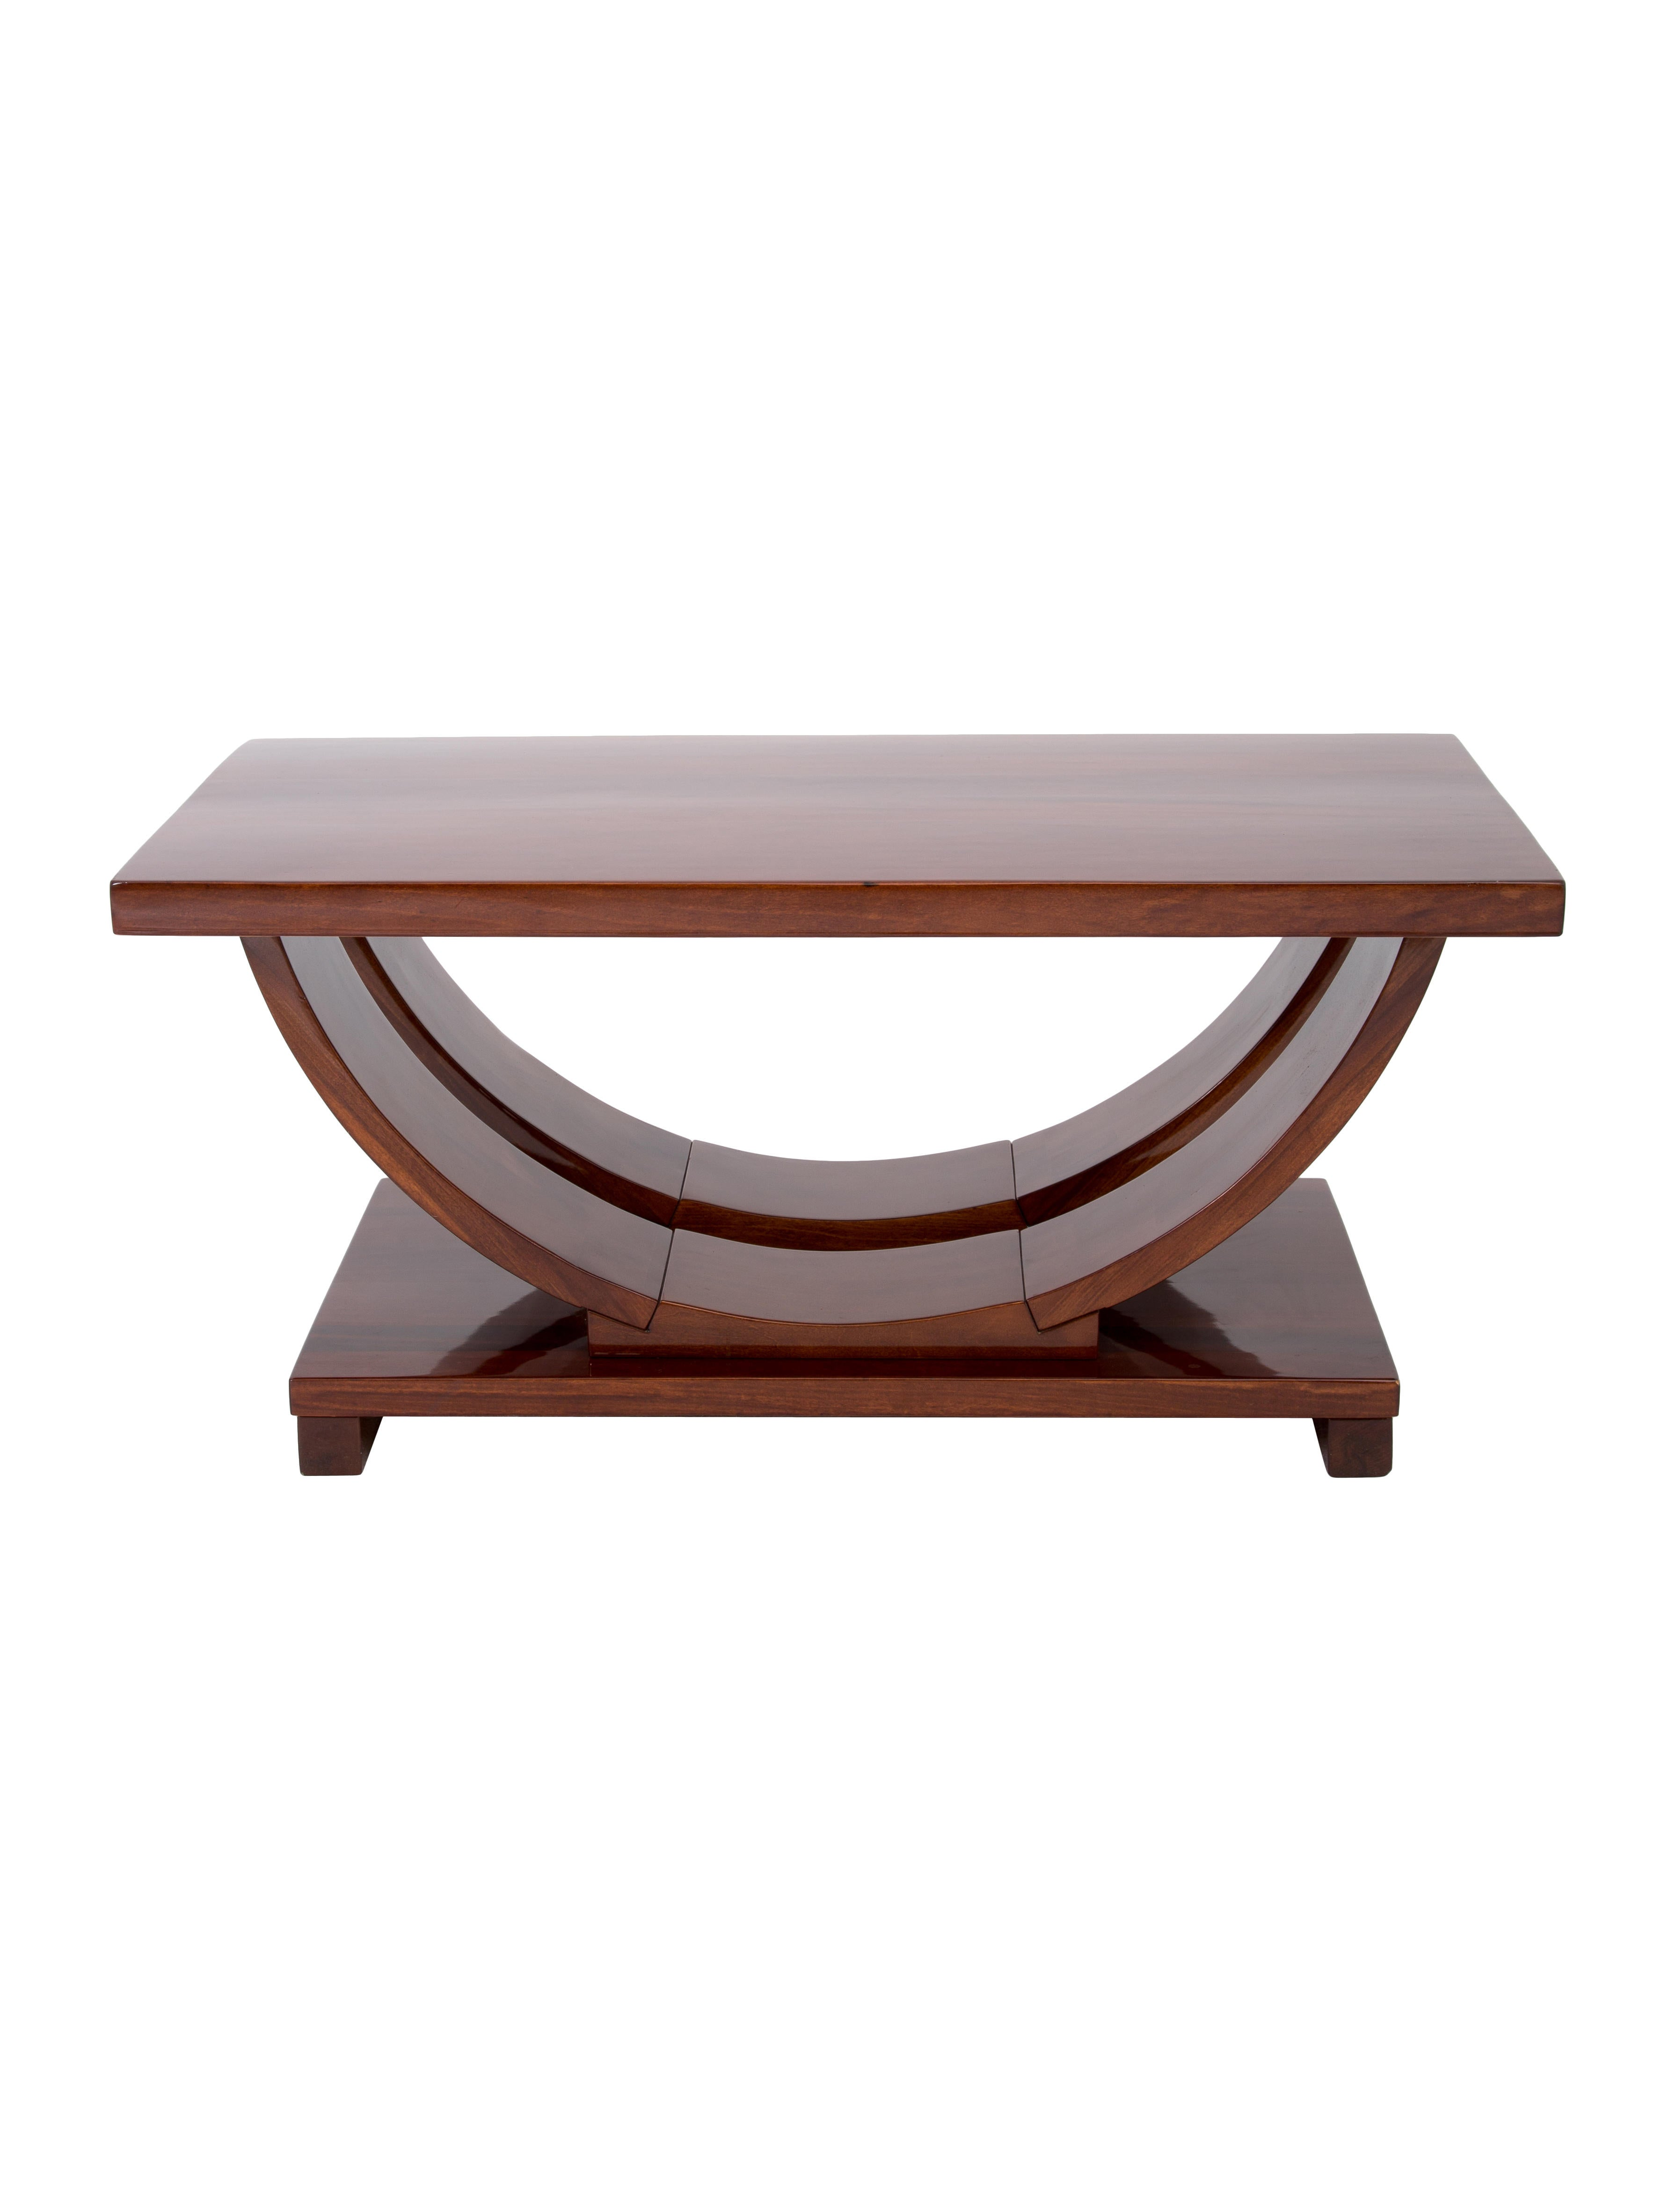 Mahogany coffee table furniture coffe20020 the realreal for Mahogany coffee table